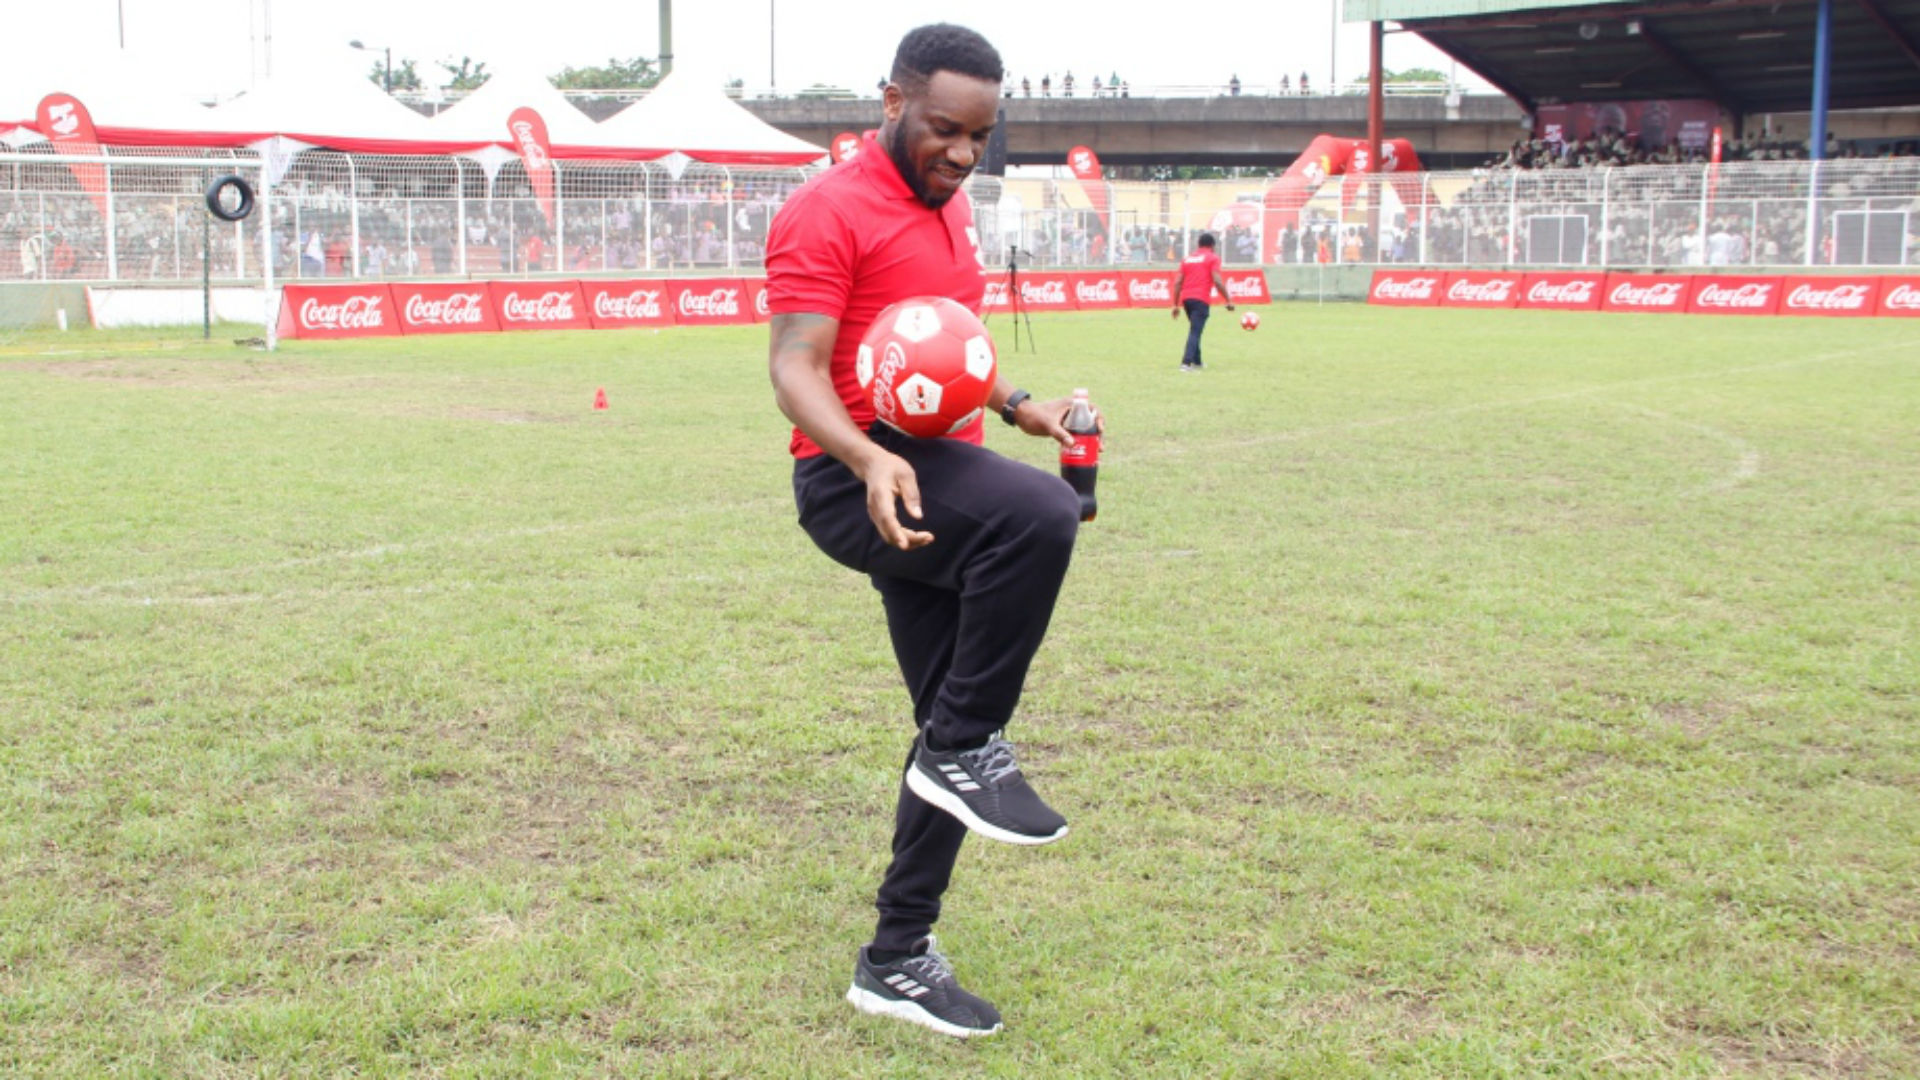 Jay Jay Okocha showing skills during Dare The COPA legends Stunt